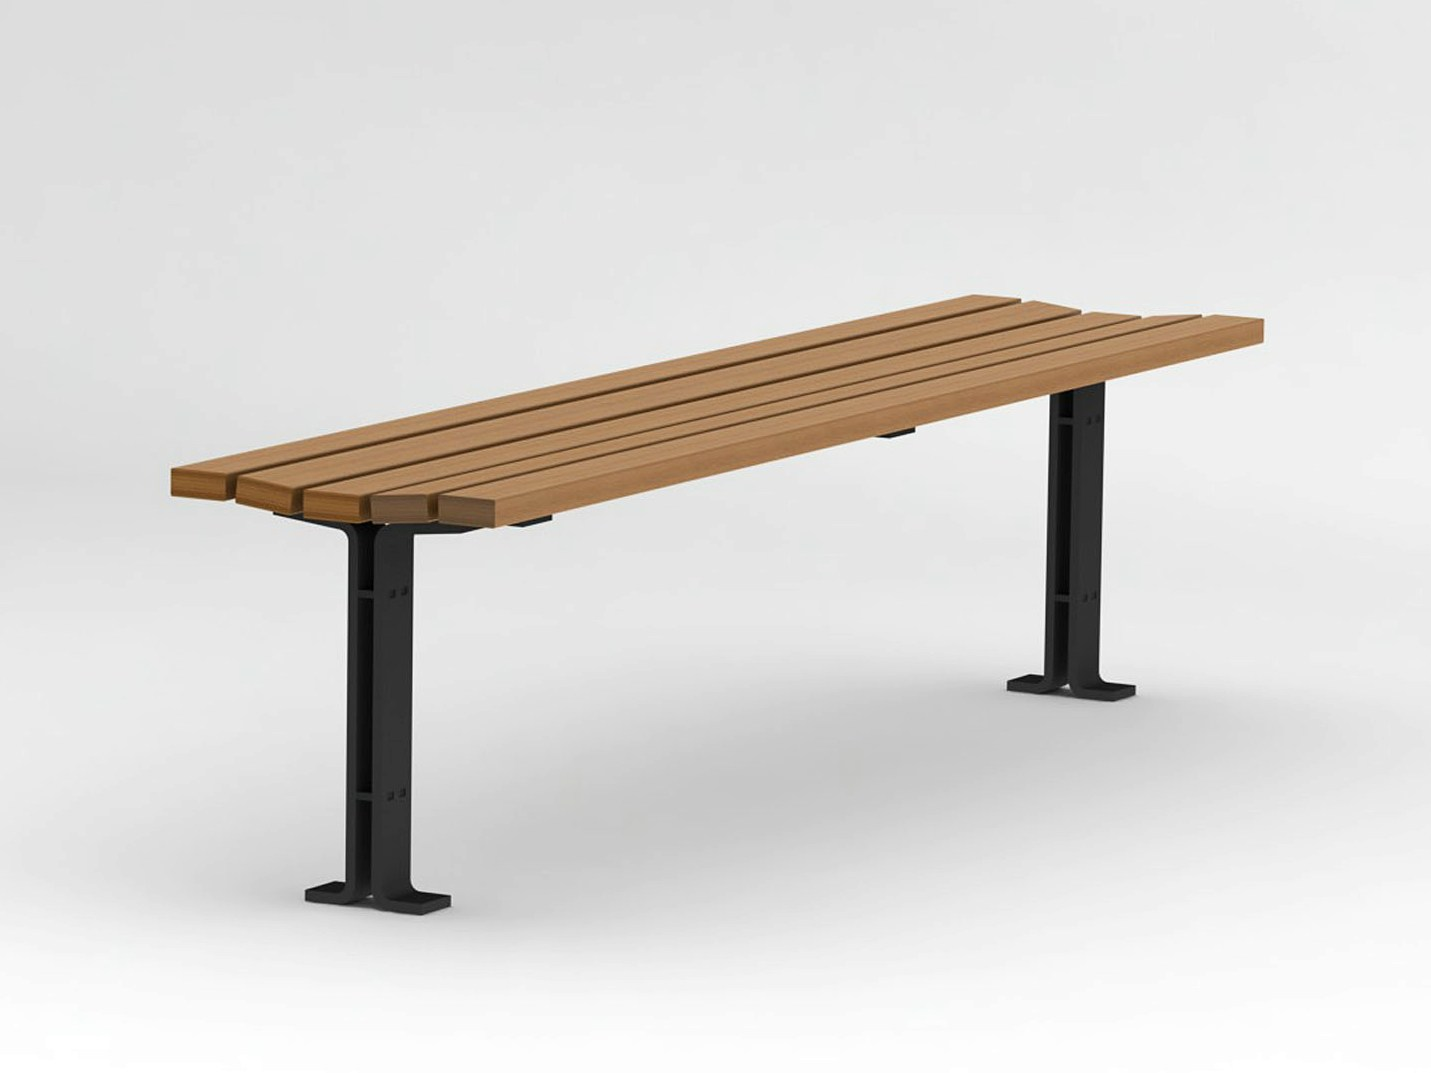 Backless Steel And Wood Bench Kajen Collection By Nola Industrier Design Thomas Bernstrand